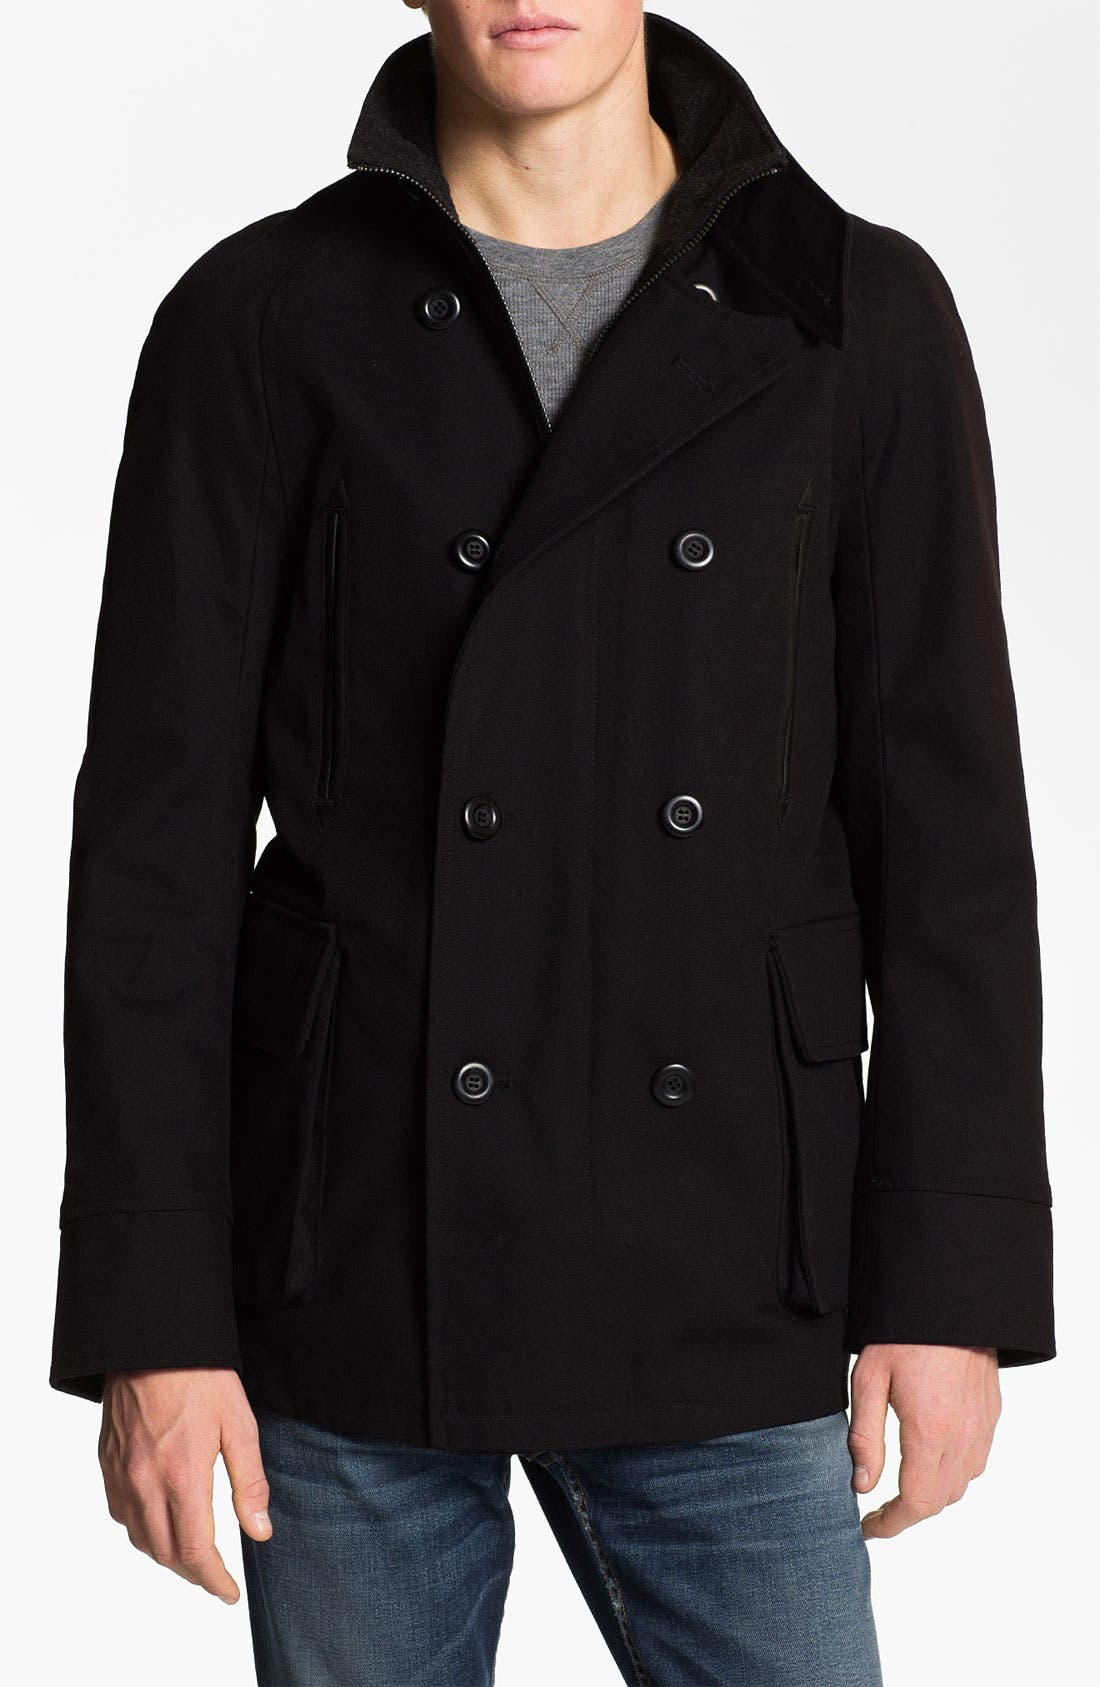 Main Image - PLECTRUM by Ben Sherman Twill Peacoat